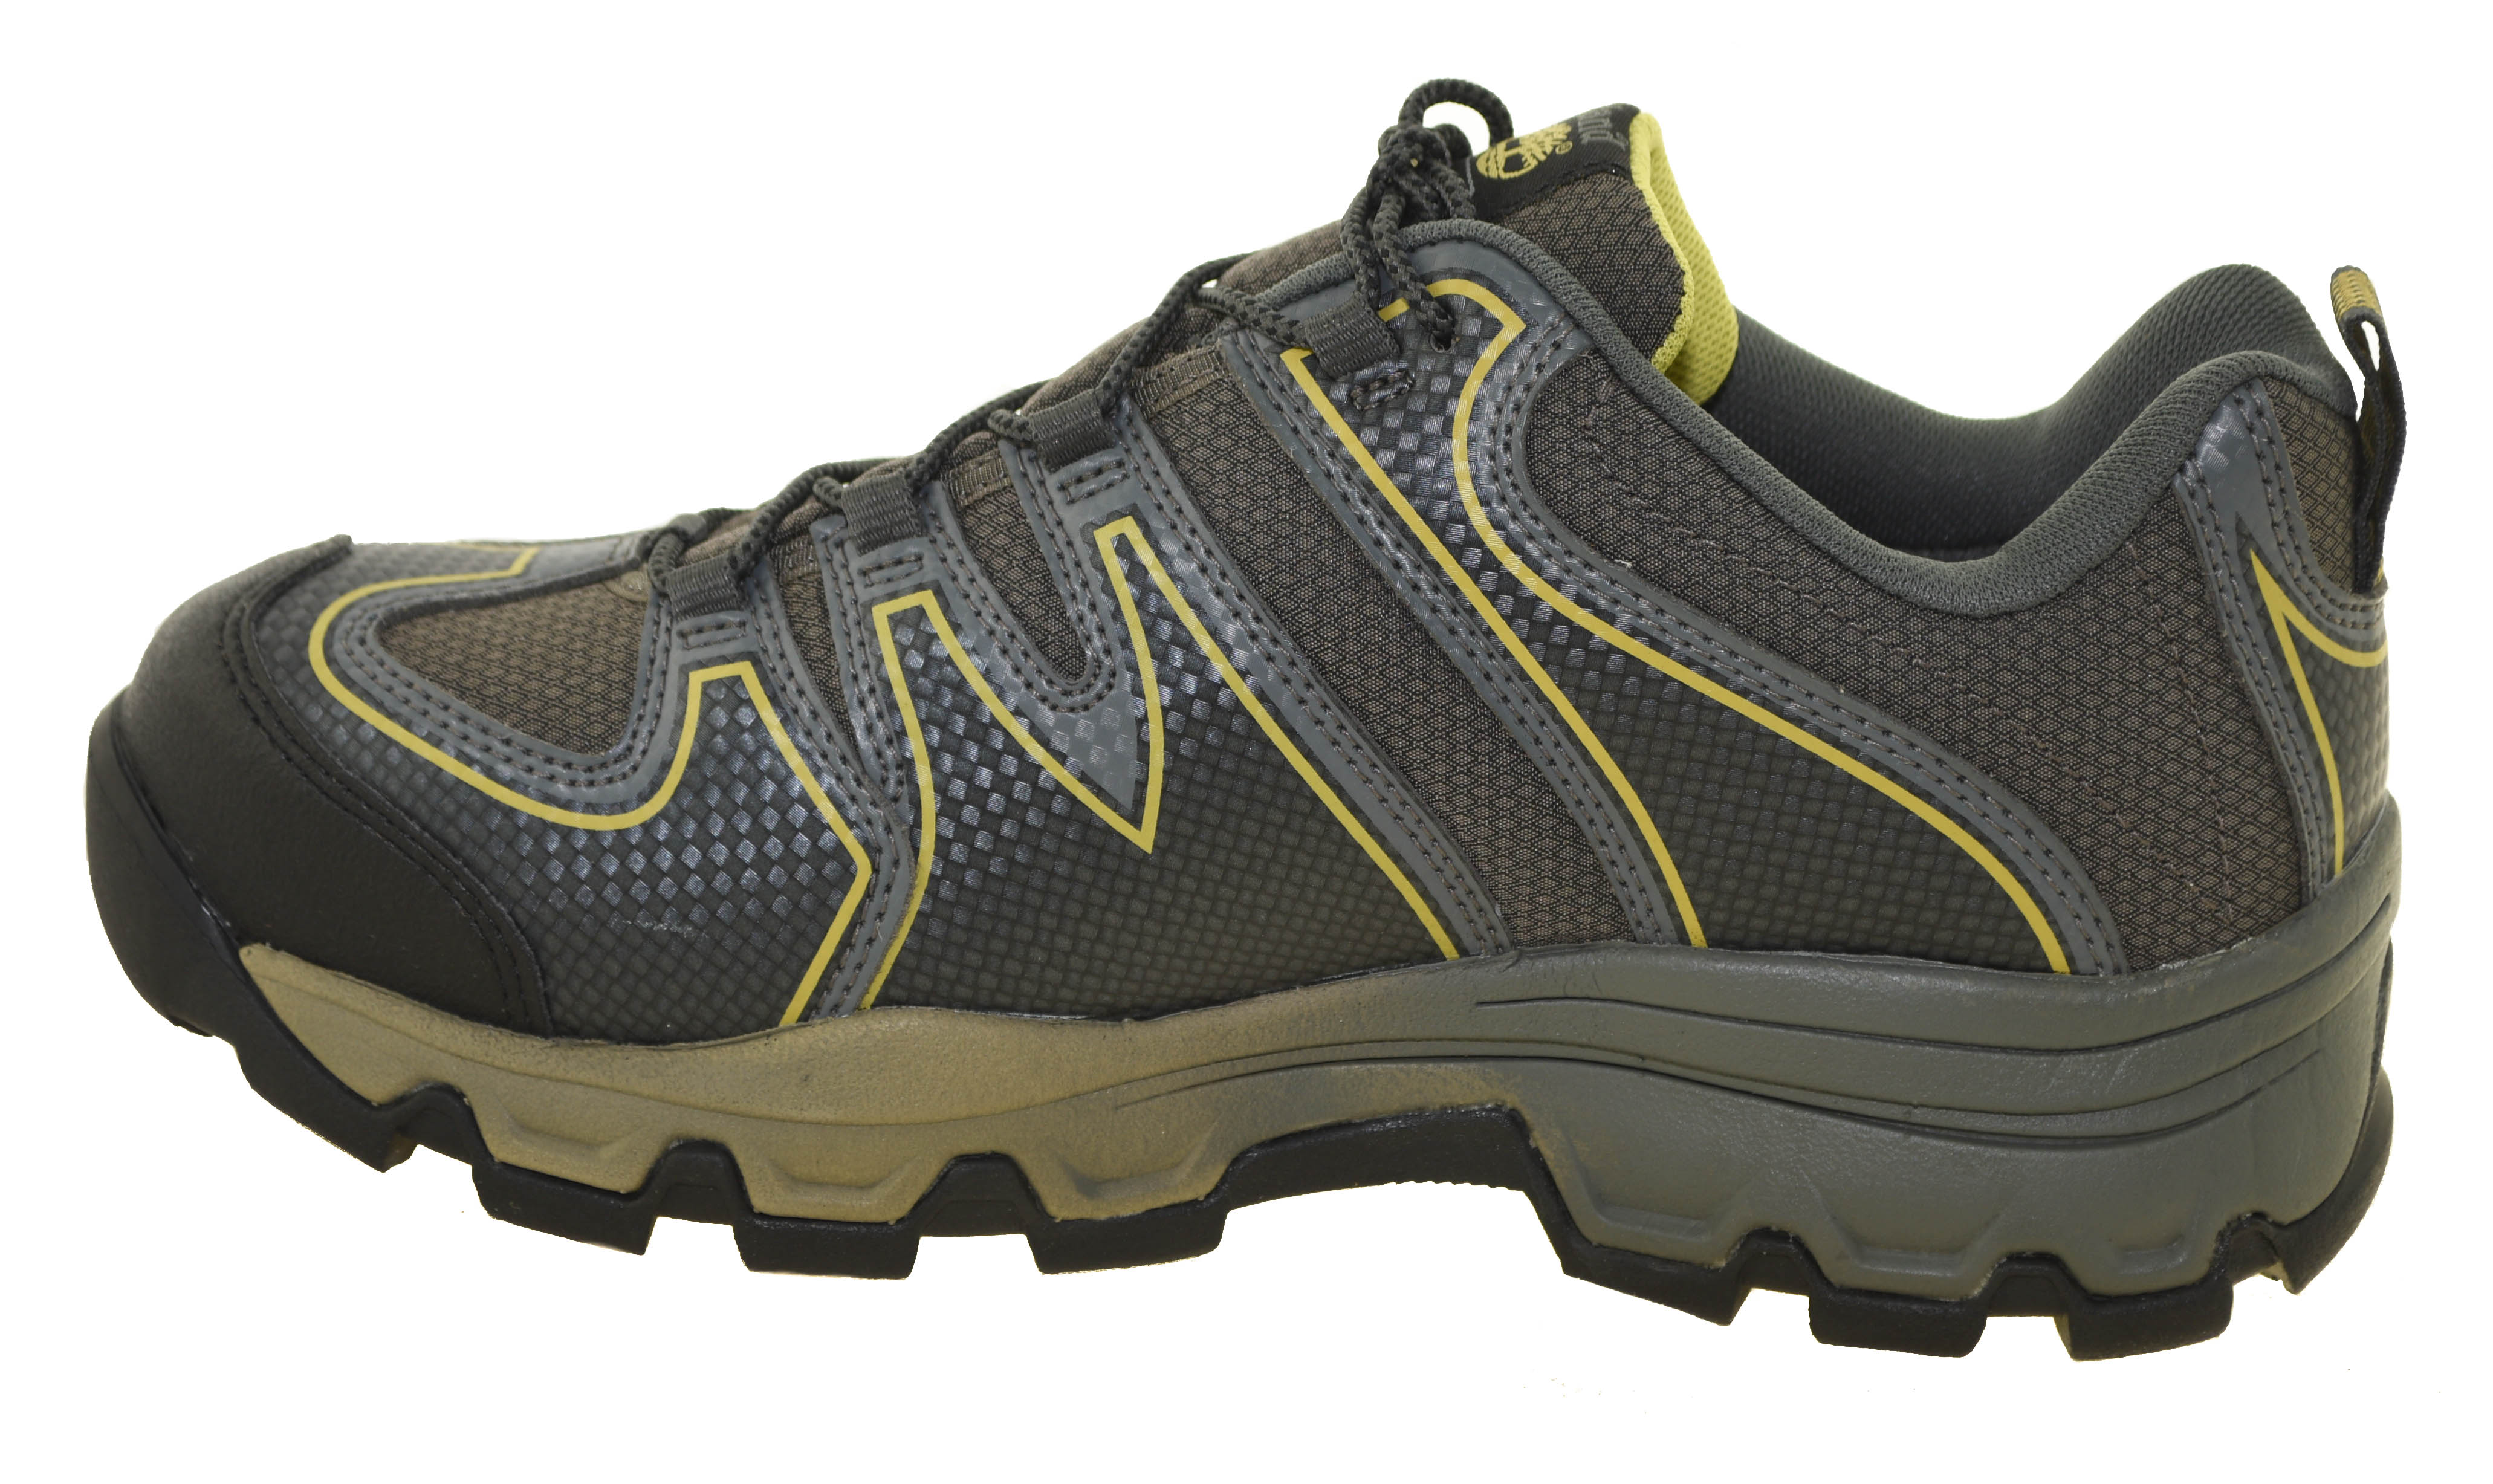 Caterpillar Safety Shoes Price In Uae ✓ Shoes Collections